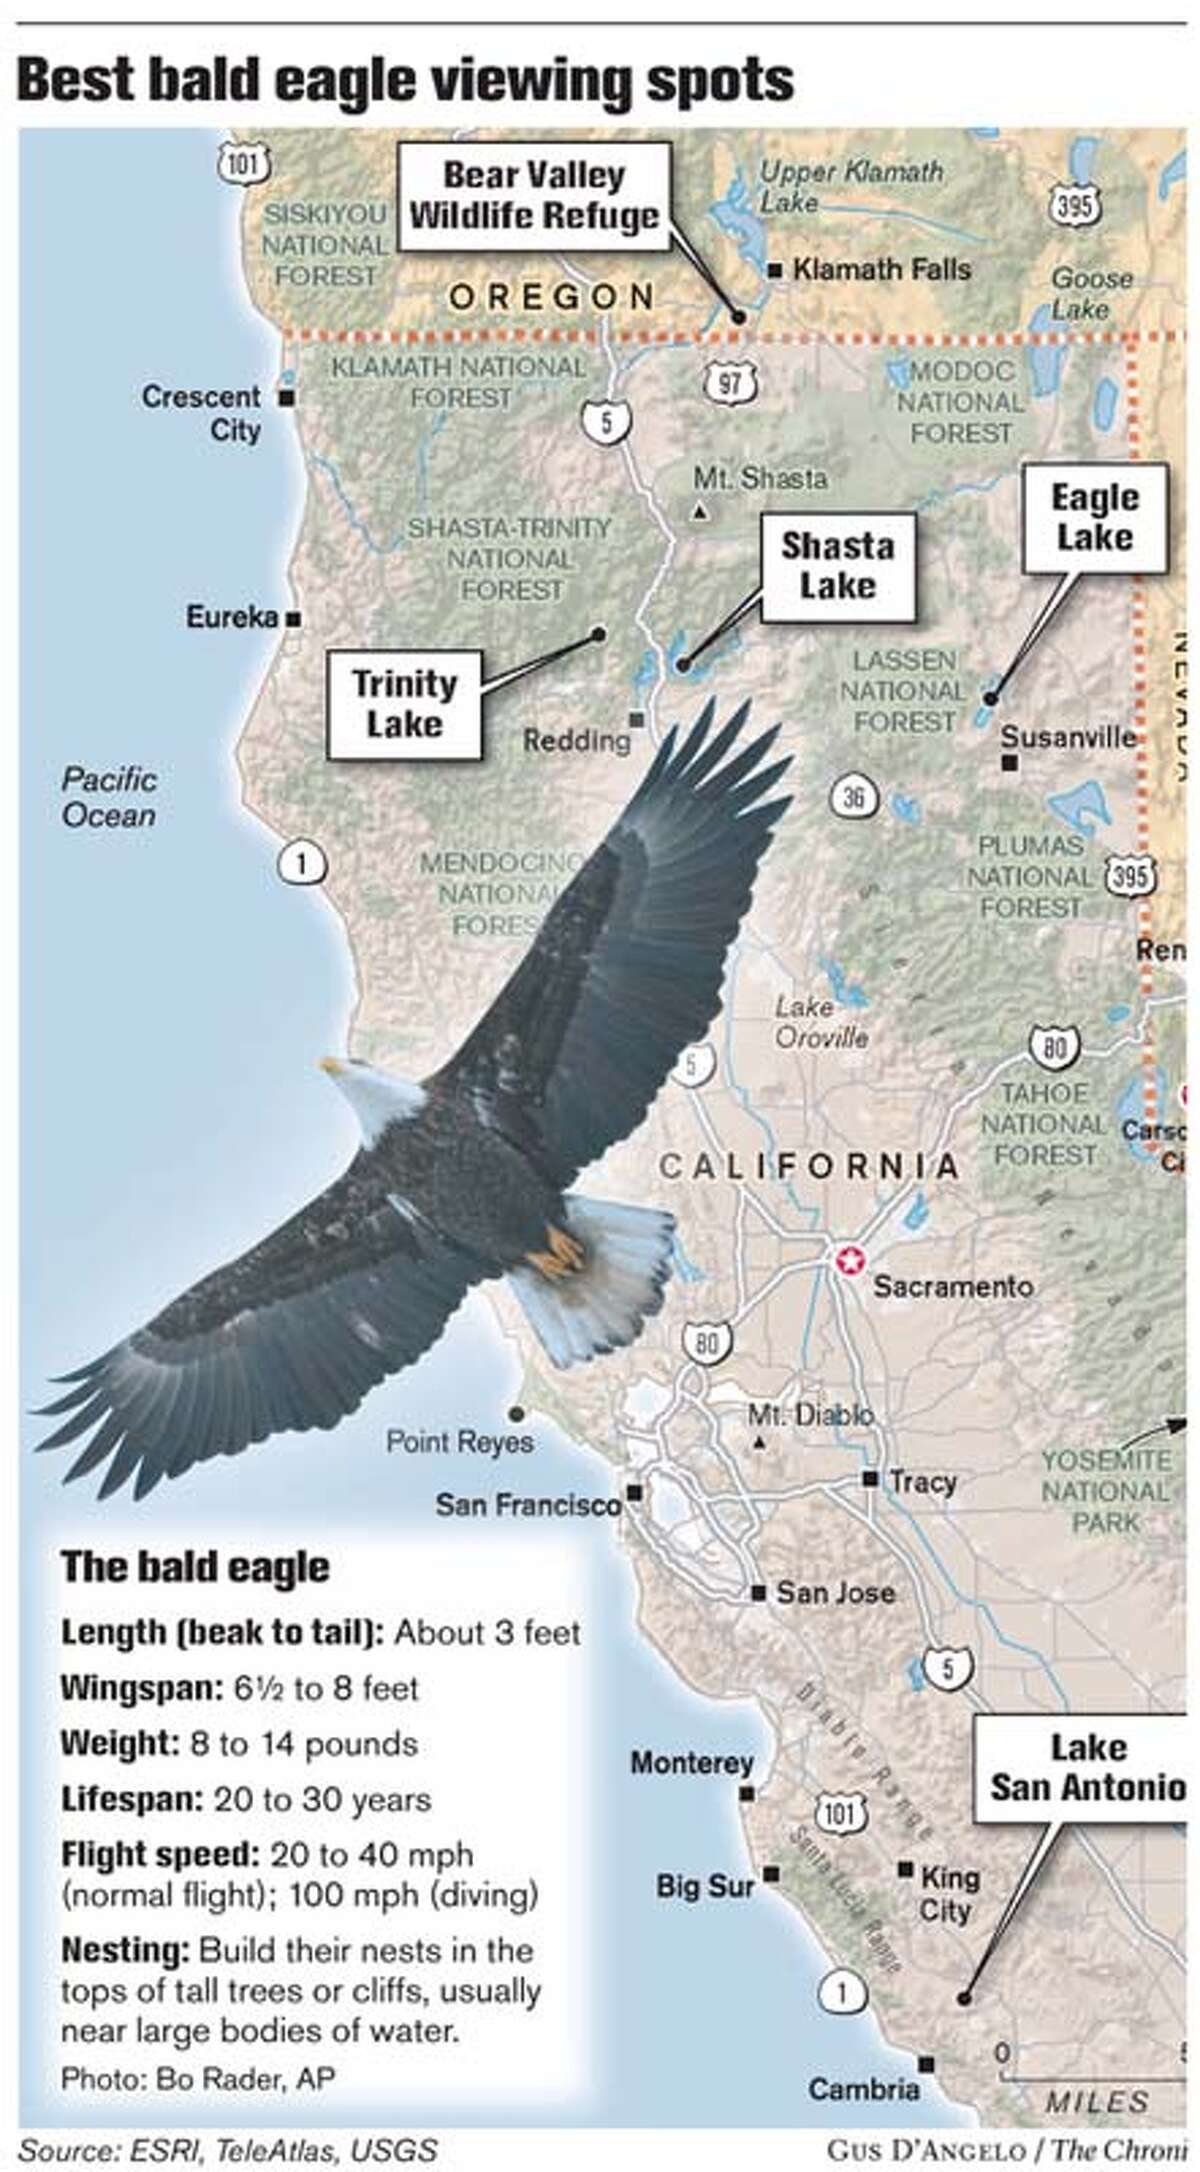 Best Bald Eagle Viewing Spots. Chronicle graphic by Gus D'Angelo